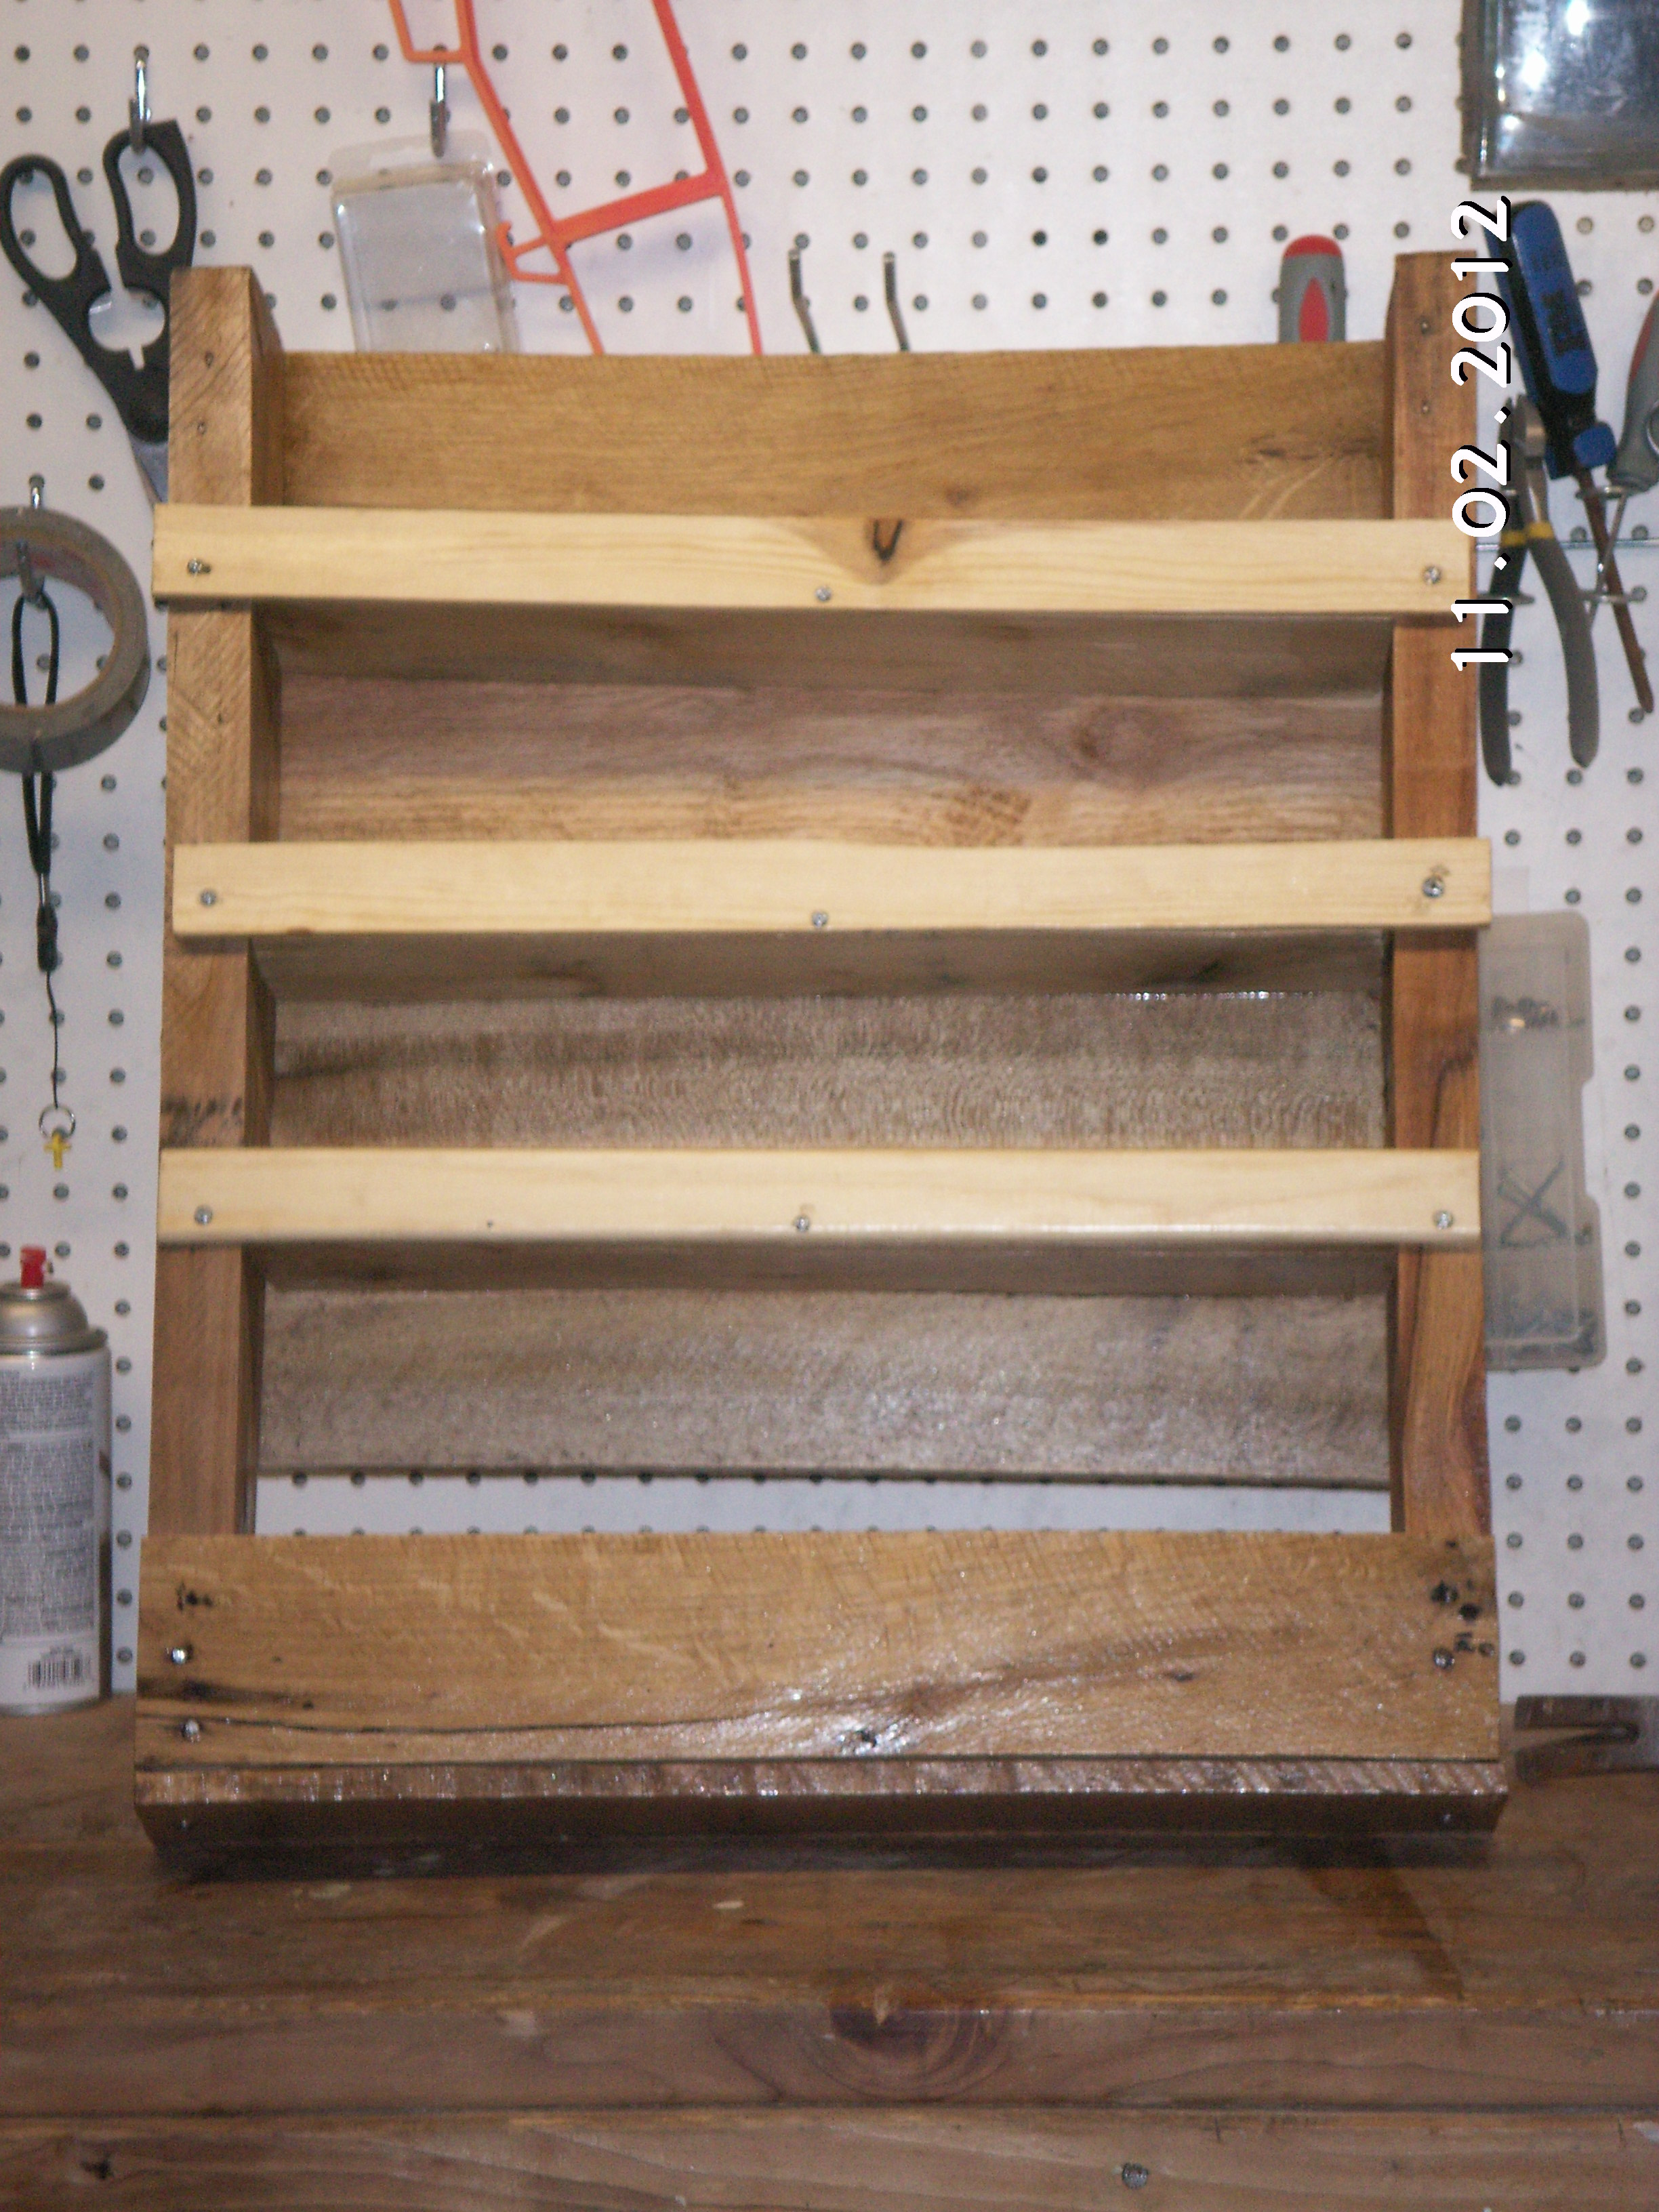 DumDun: Beginner wood pallet projects images